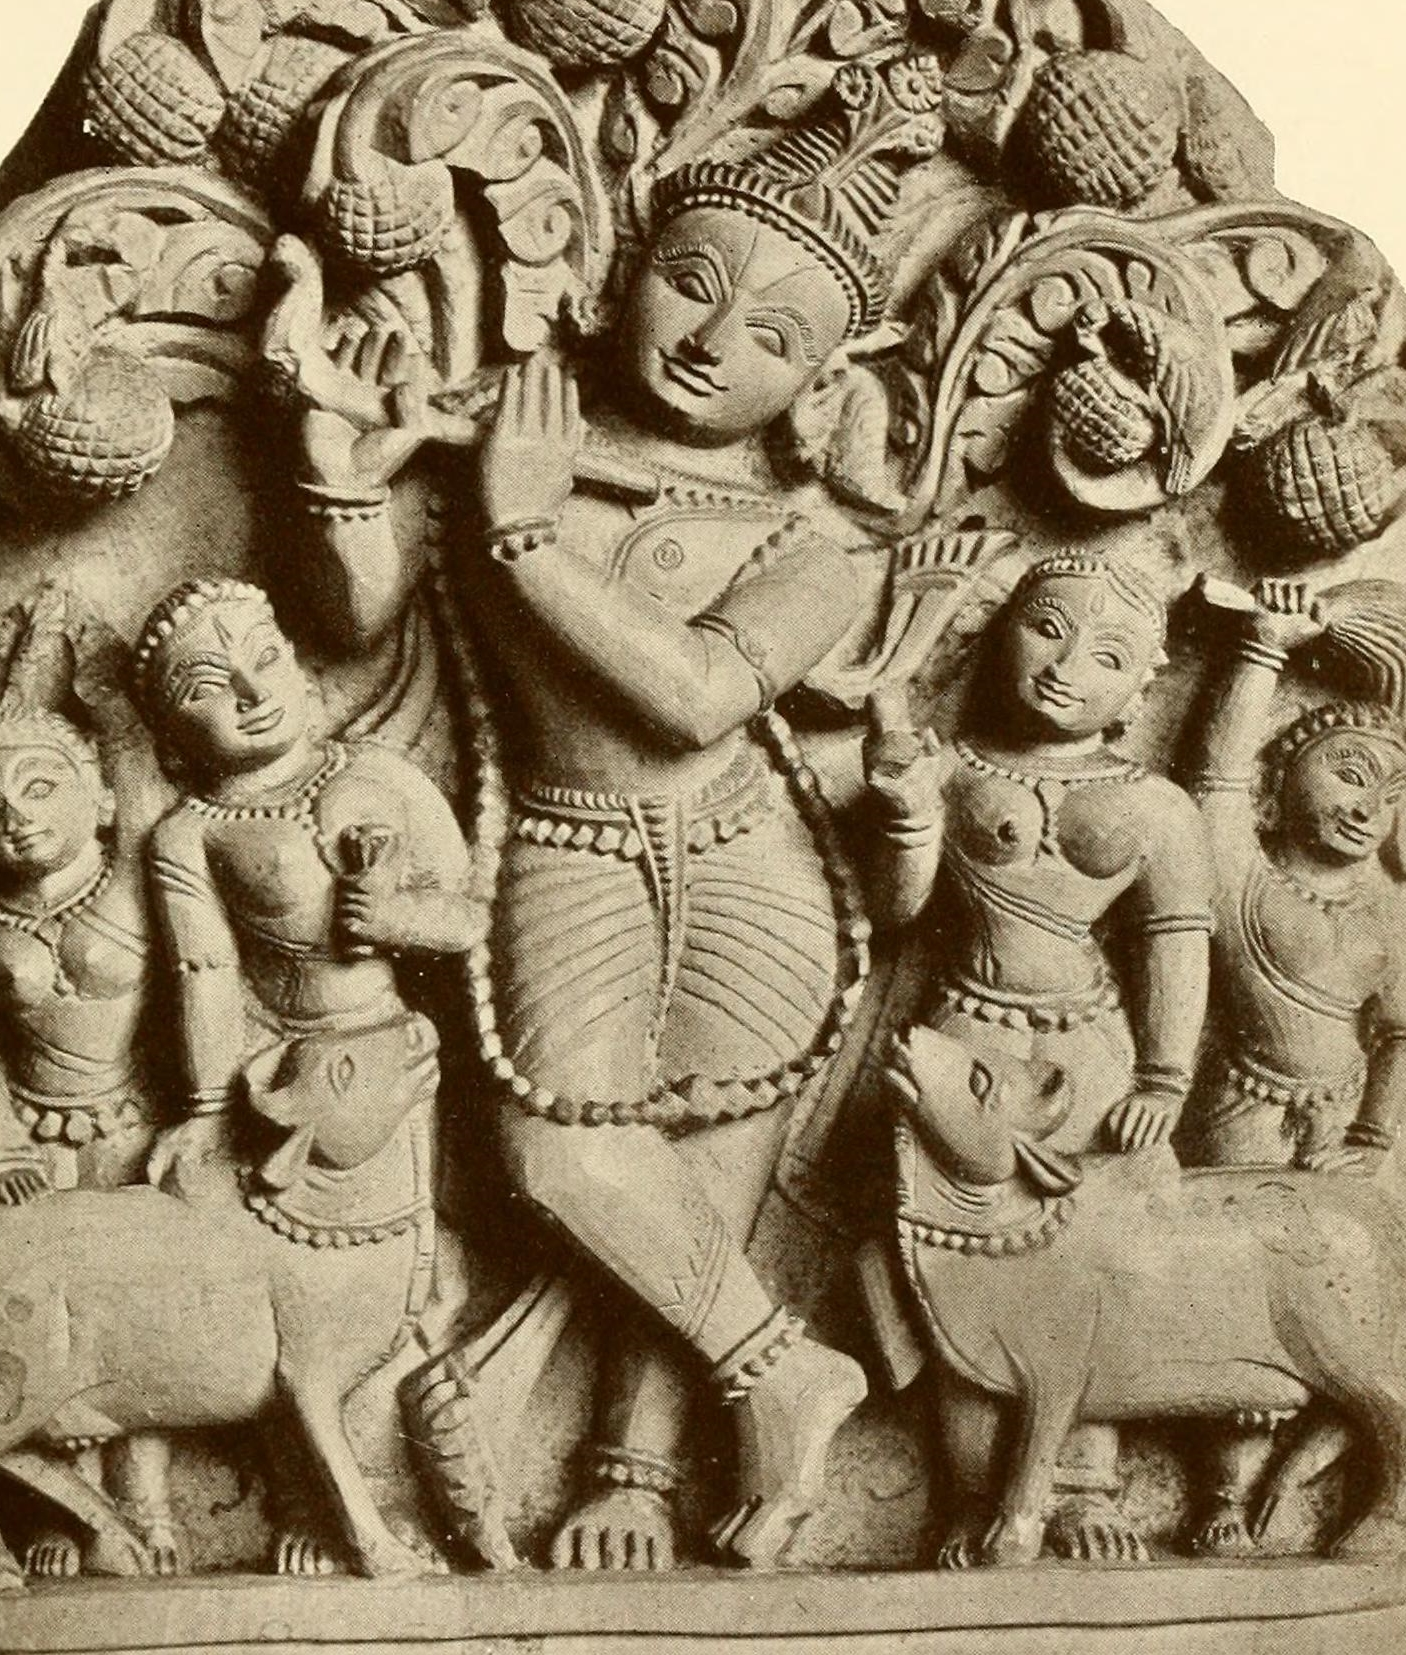 Krishna_and_Gopis_(herdsmaids)_sculpture_1913.jpg